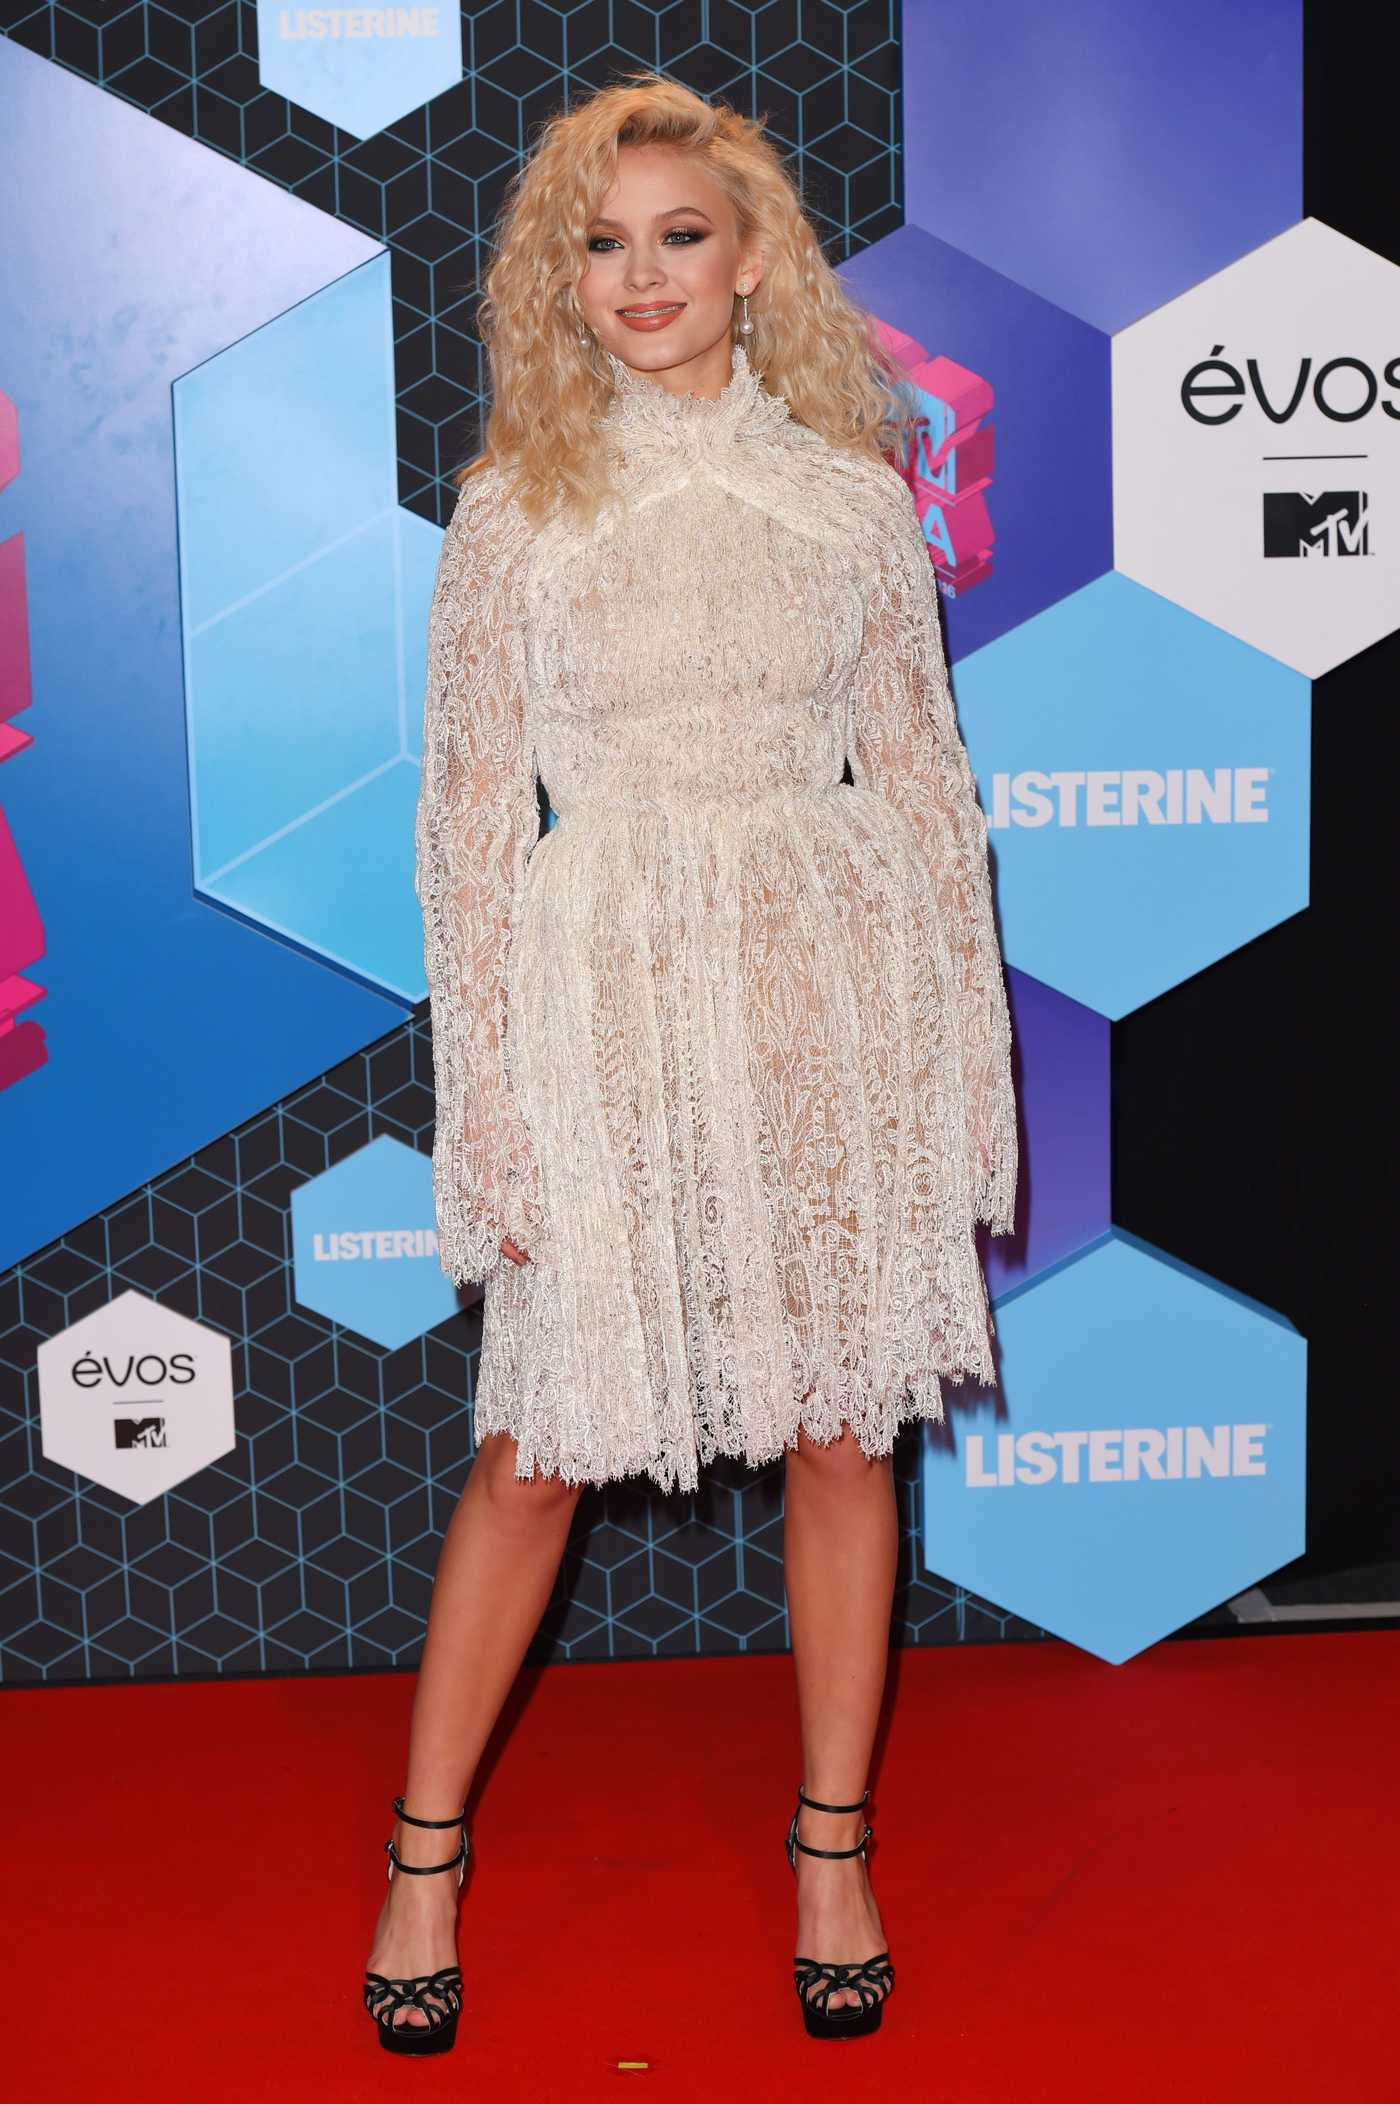 Zara Larsson at the MTV Europe Music Awards in Rotterdam 11/06/2016